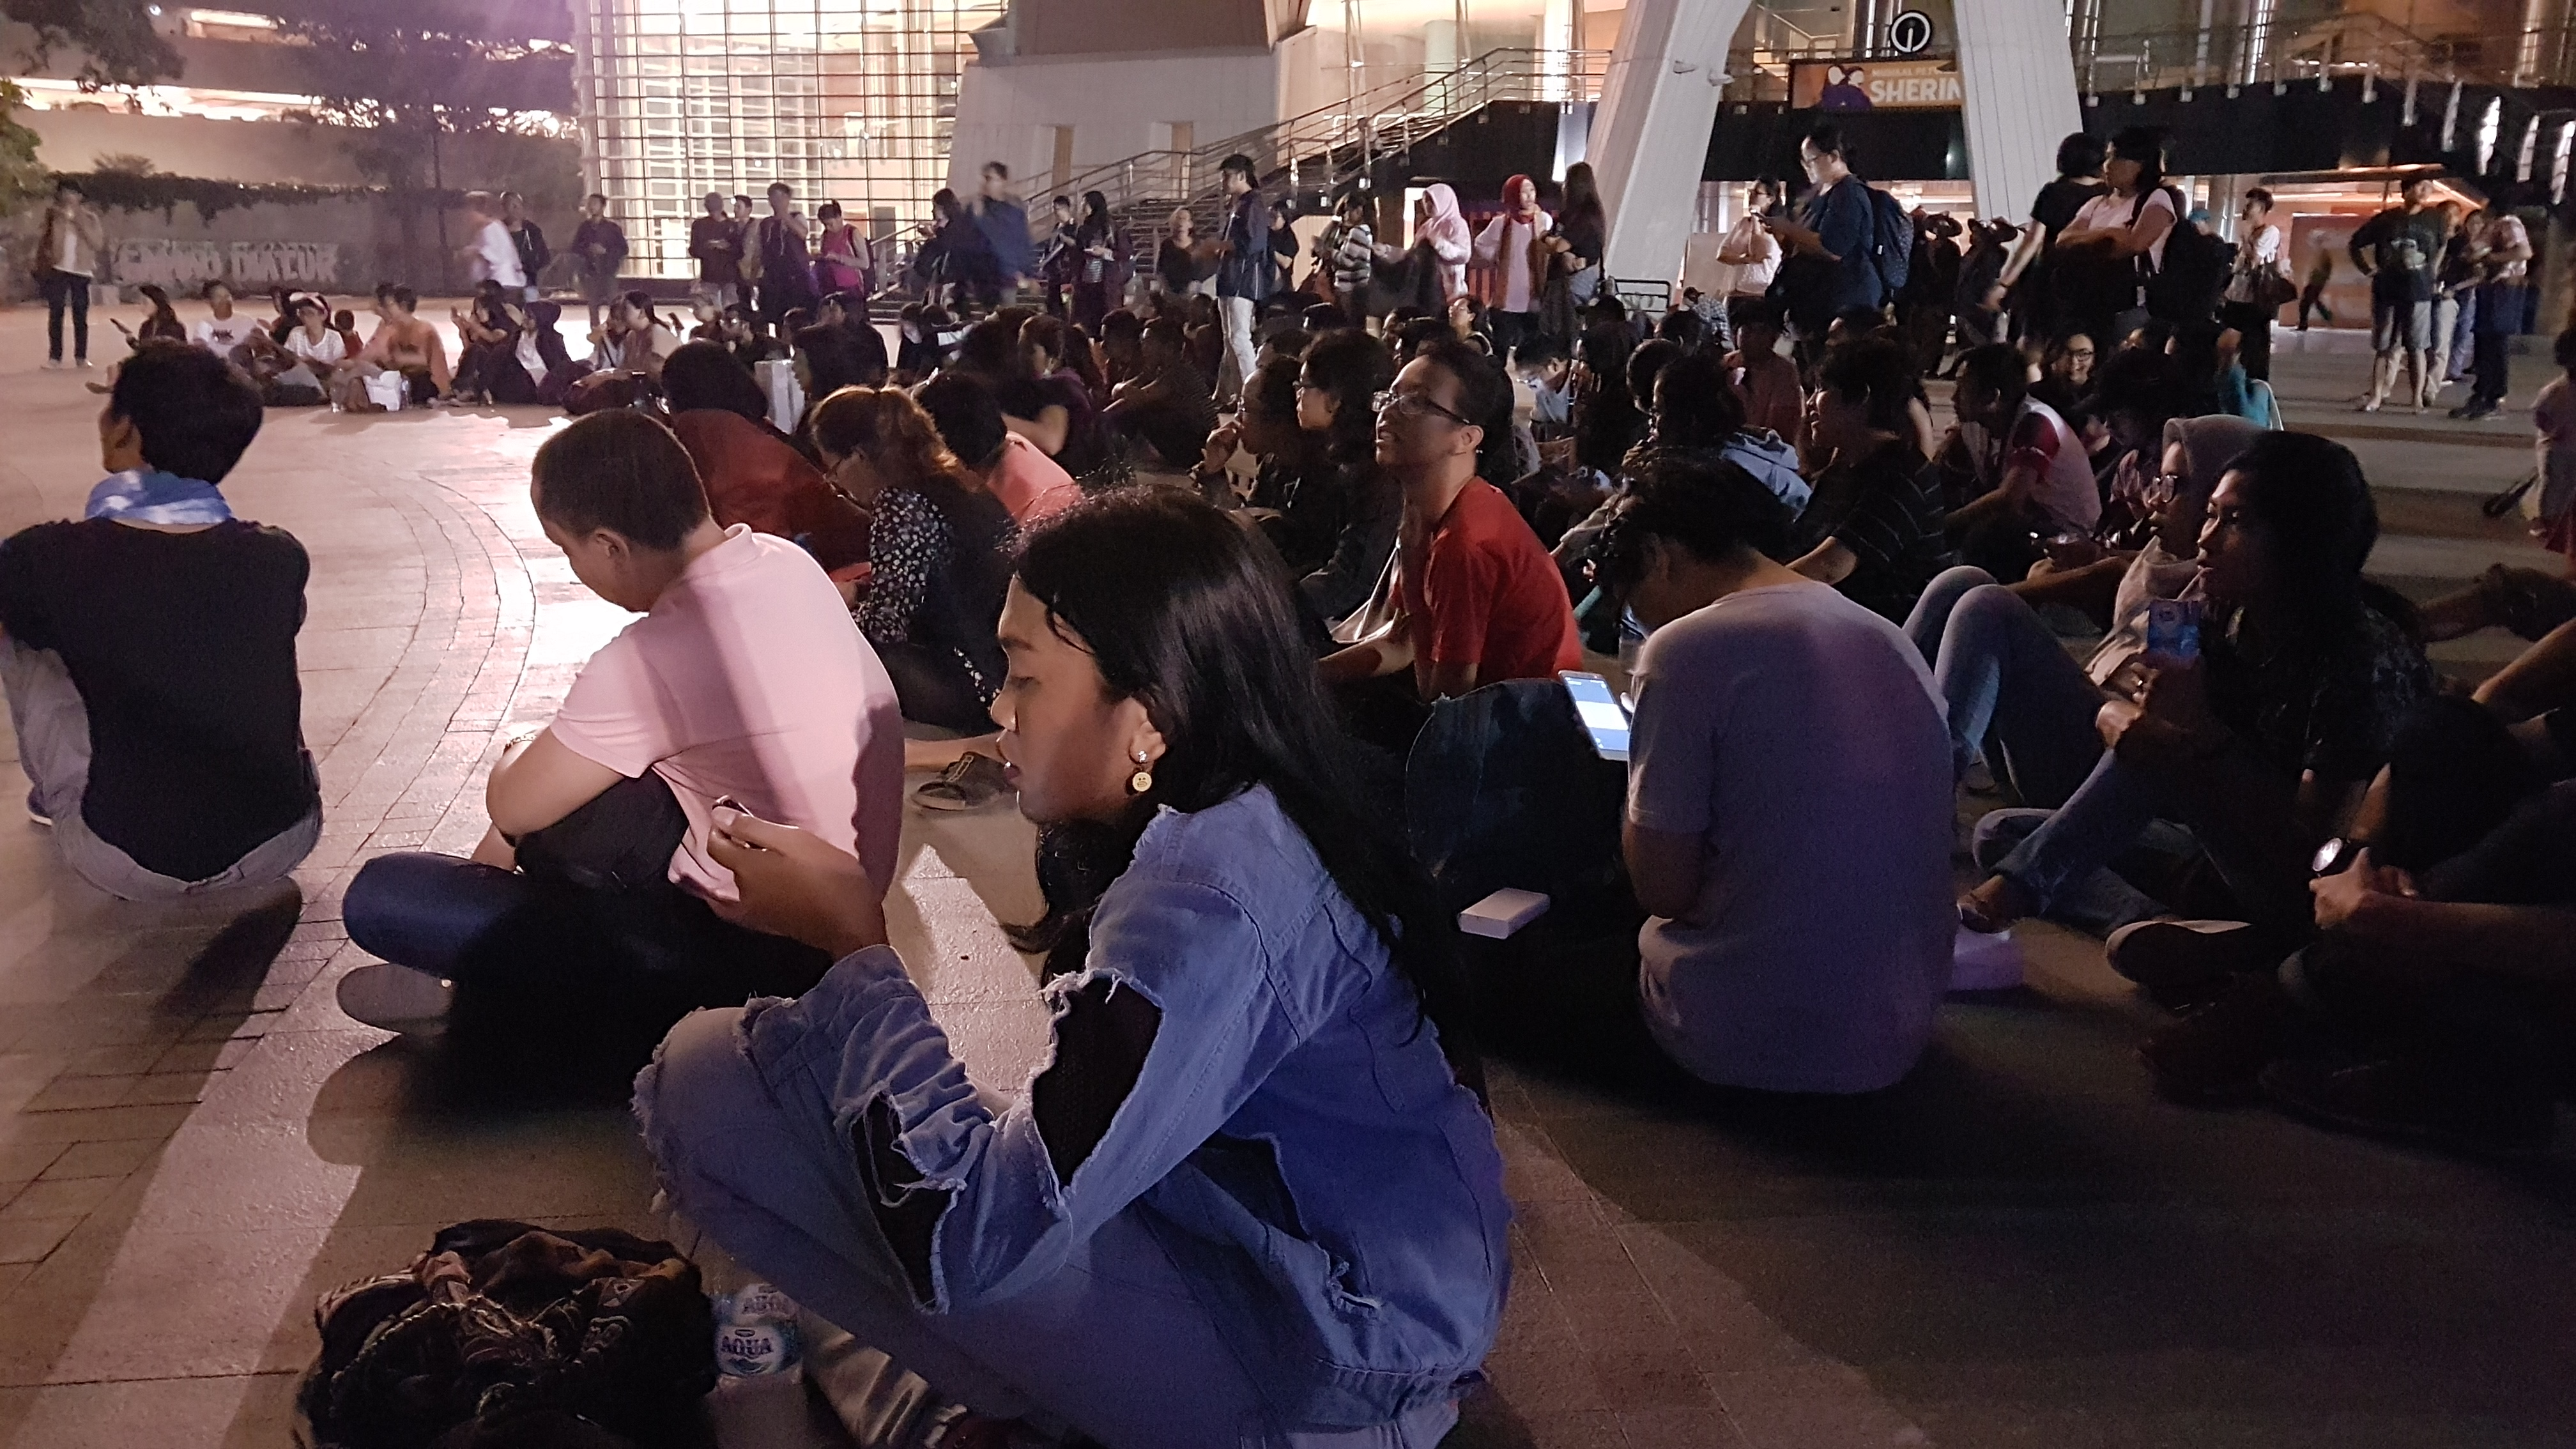 Photo of the crowd during the monologue event of One Billion Rising Jakarta 2018